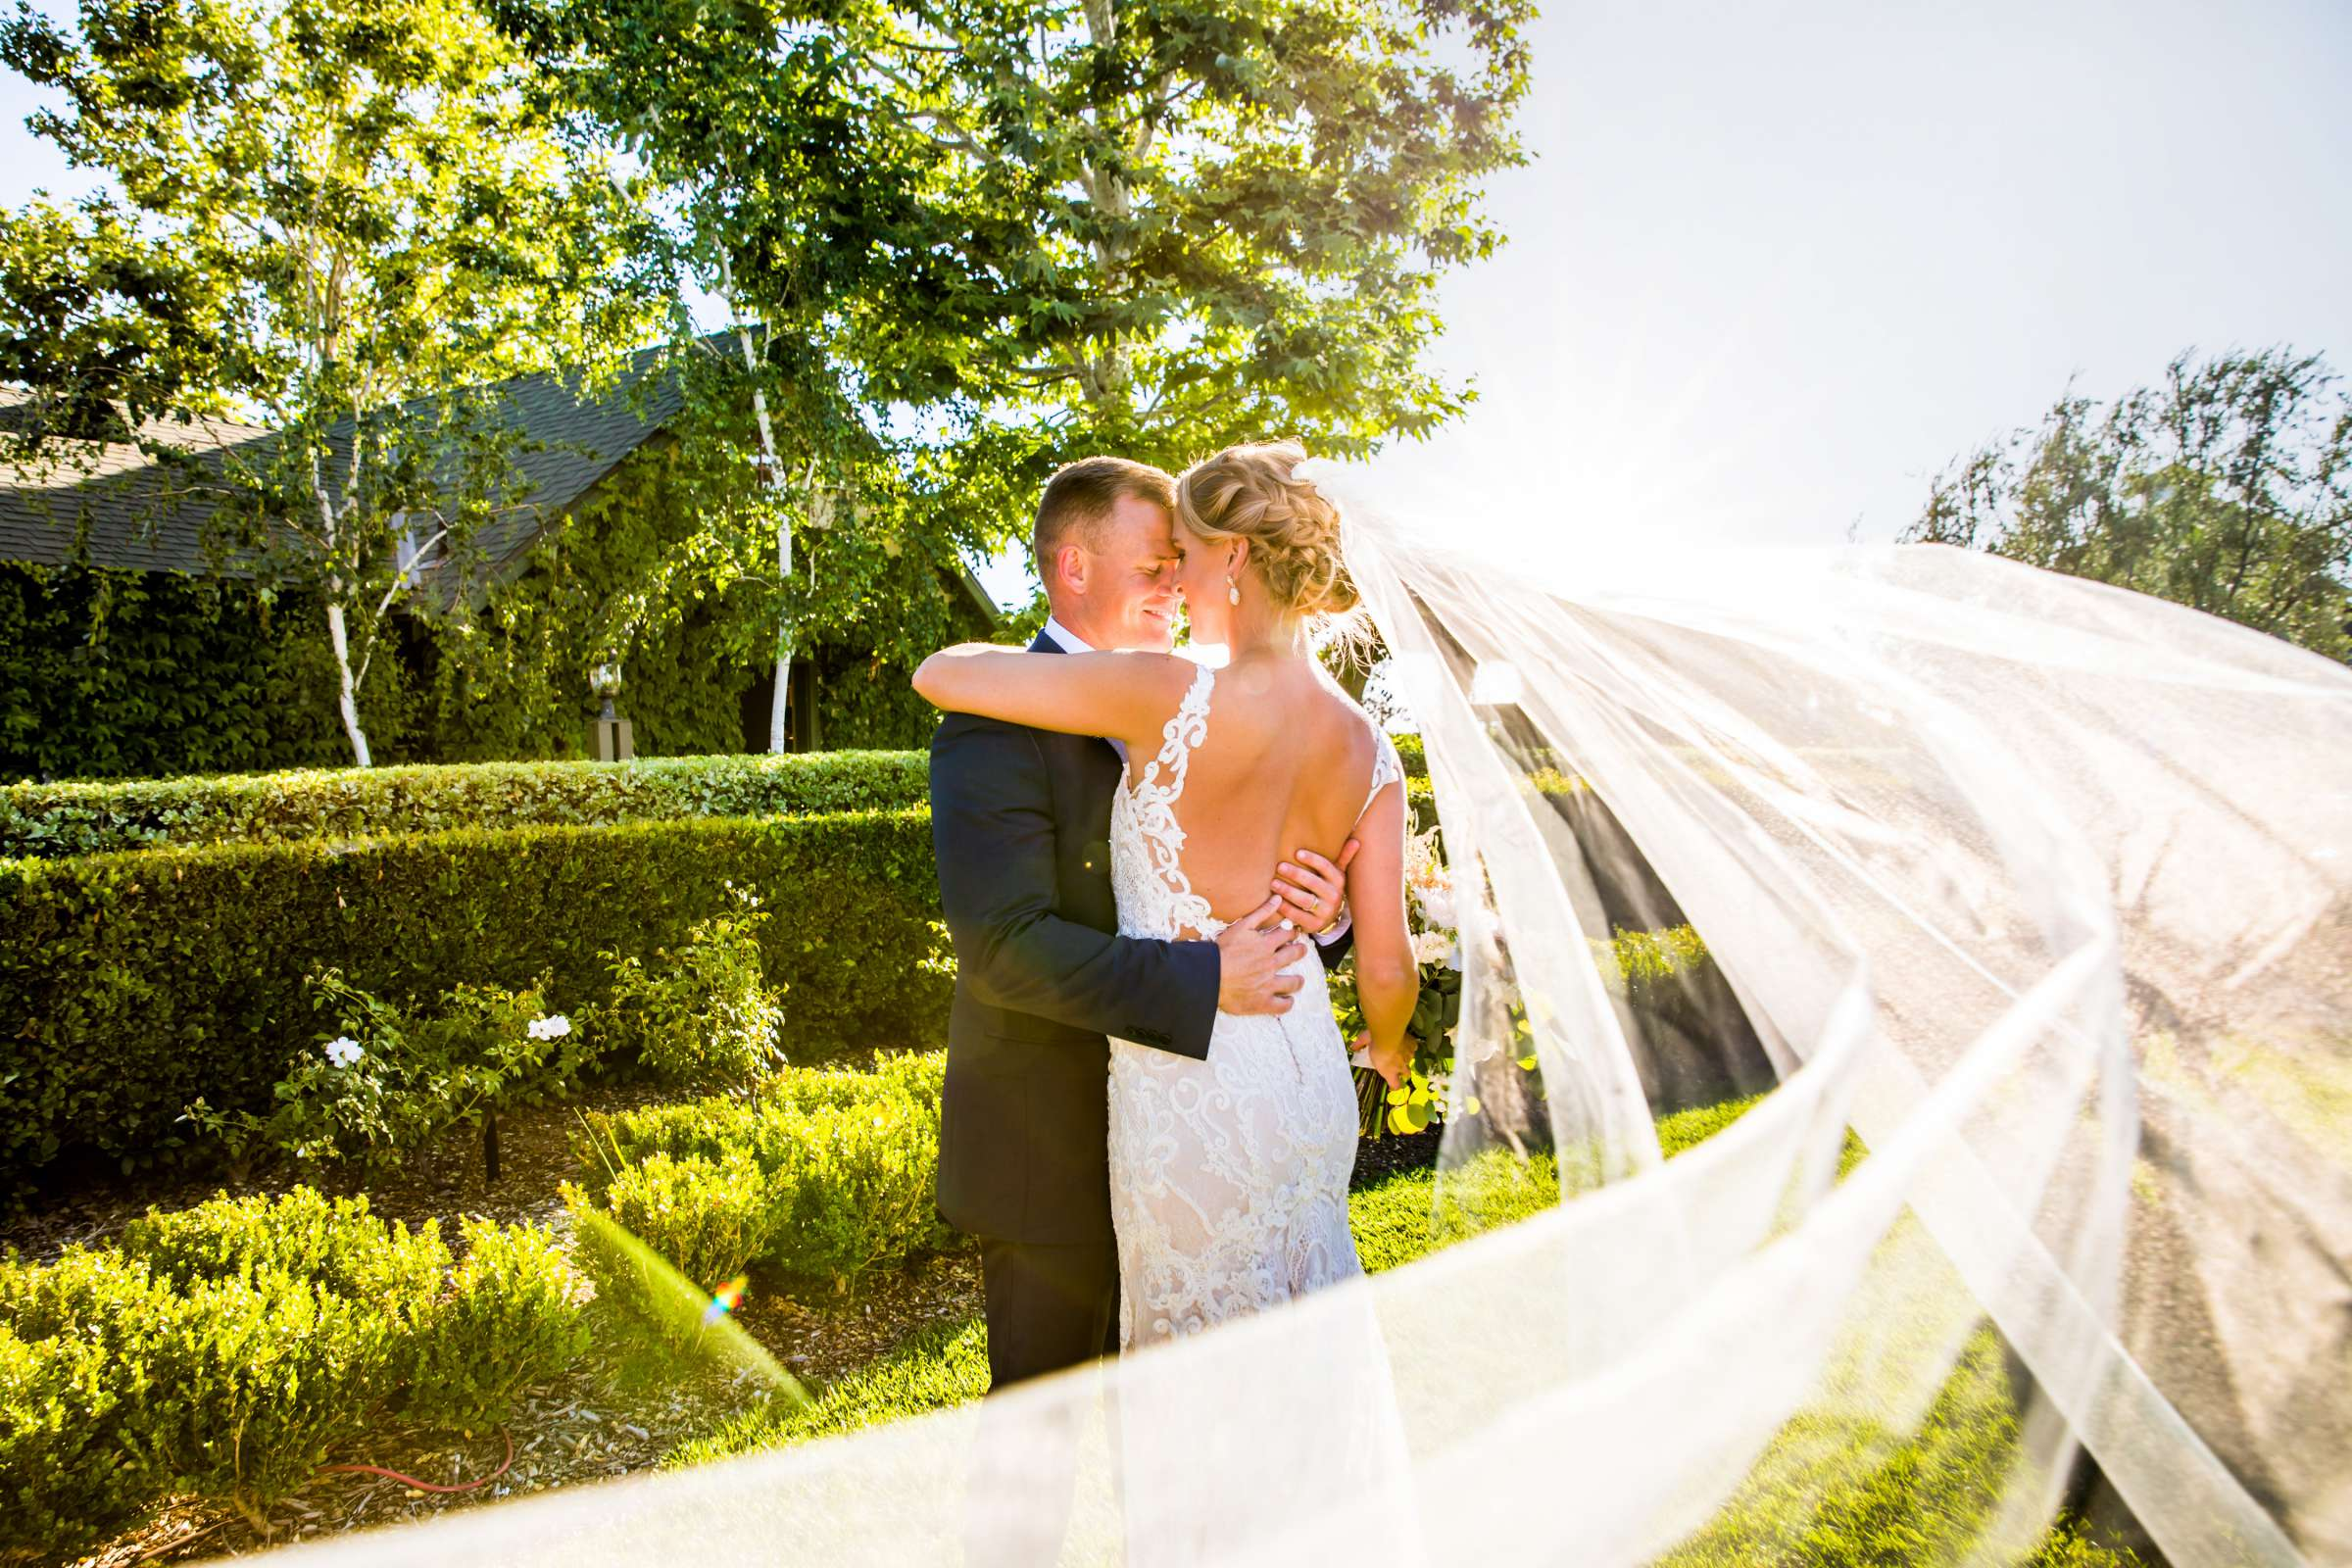 Ponte Estate Winery Wedding, Kelsey and Andrew Wedding Photo #1 by True Photography